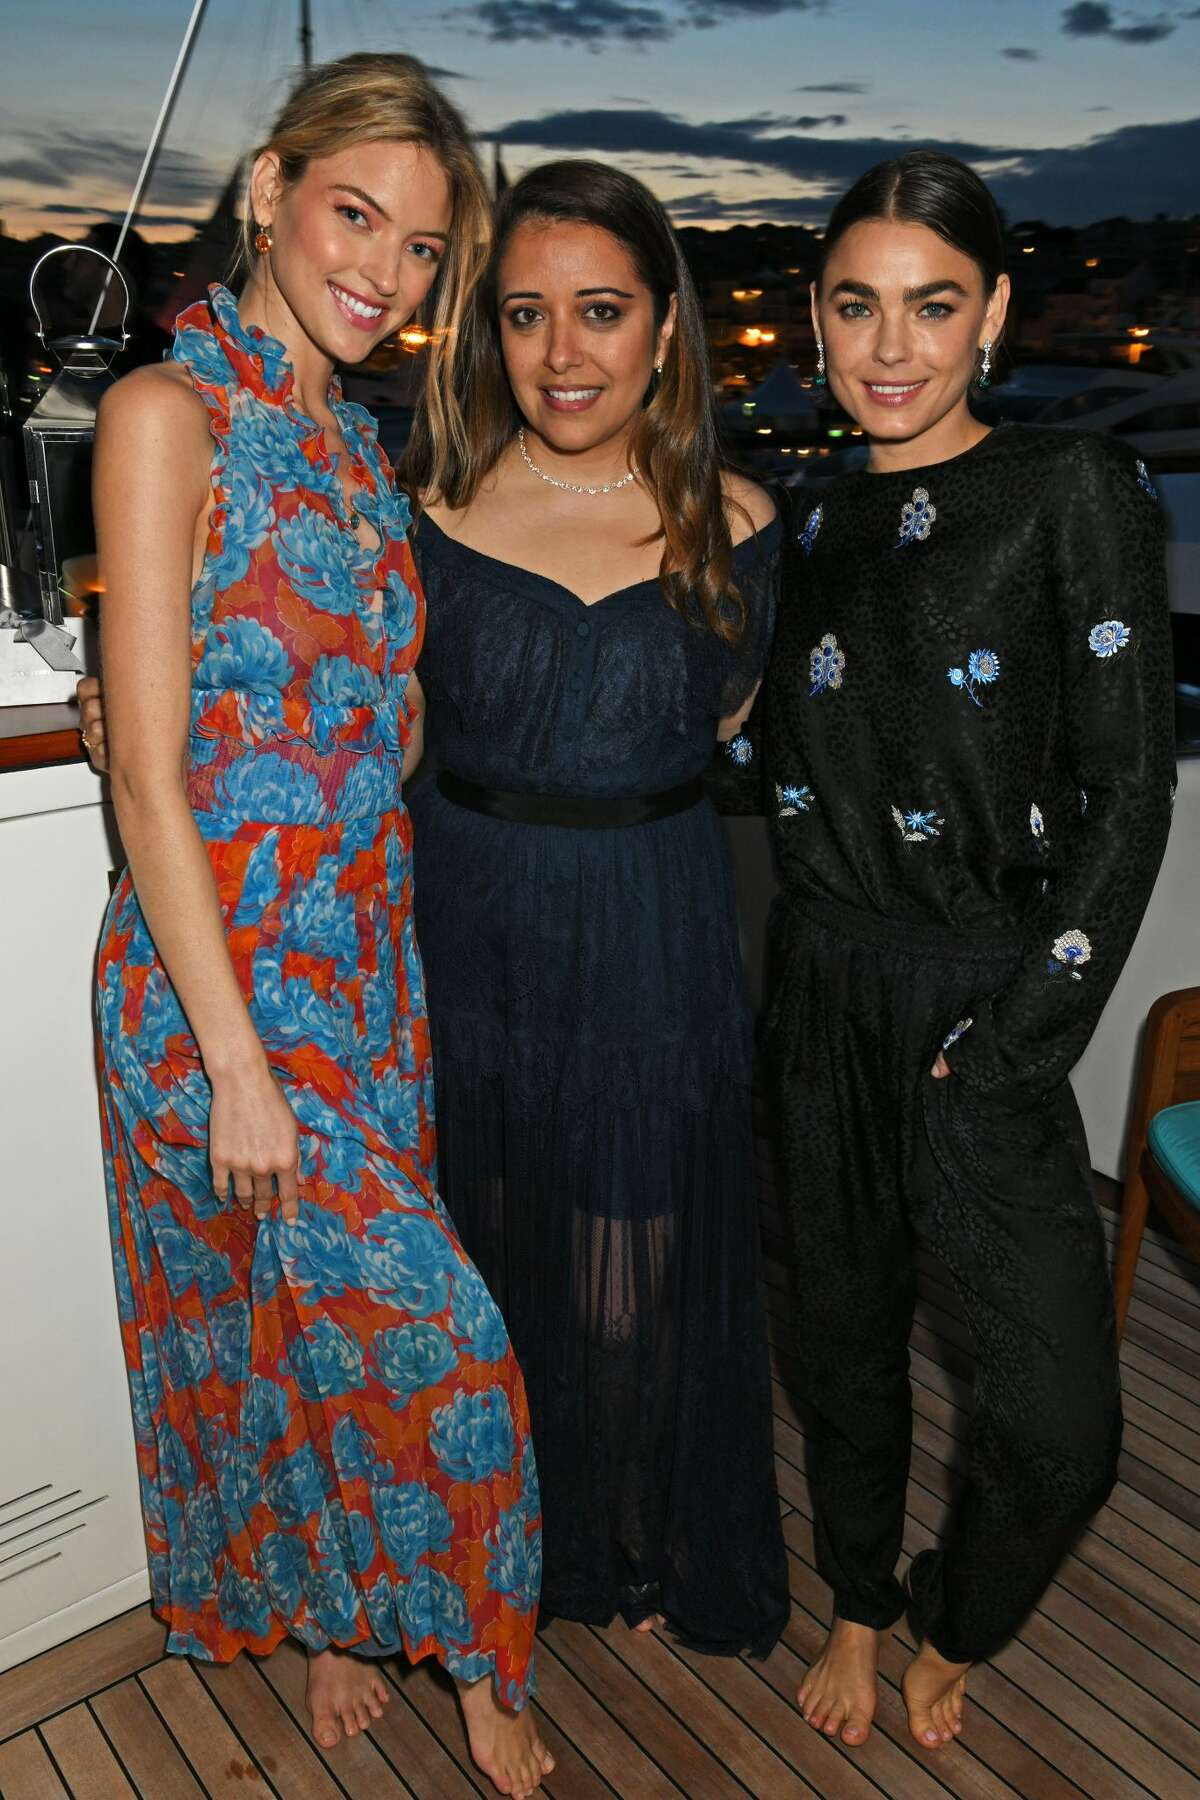 (L to R) Martha Hunt, Laura Chavez and Bambi Northwood-Blyth, wearing Lark and Berry, attend the Lark and Berry launch party on a private yacht during the 71st Cannes Film Festival on May 16, 2018 in Cannes, France.